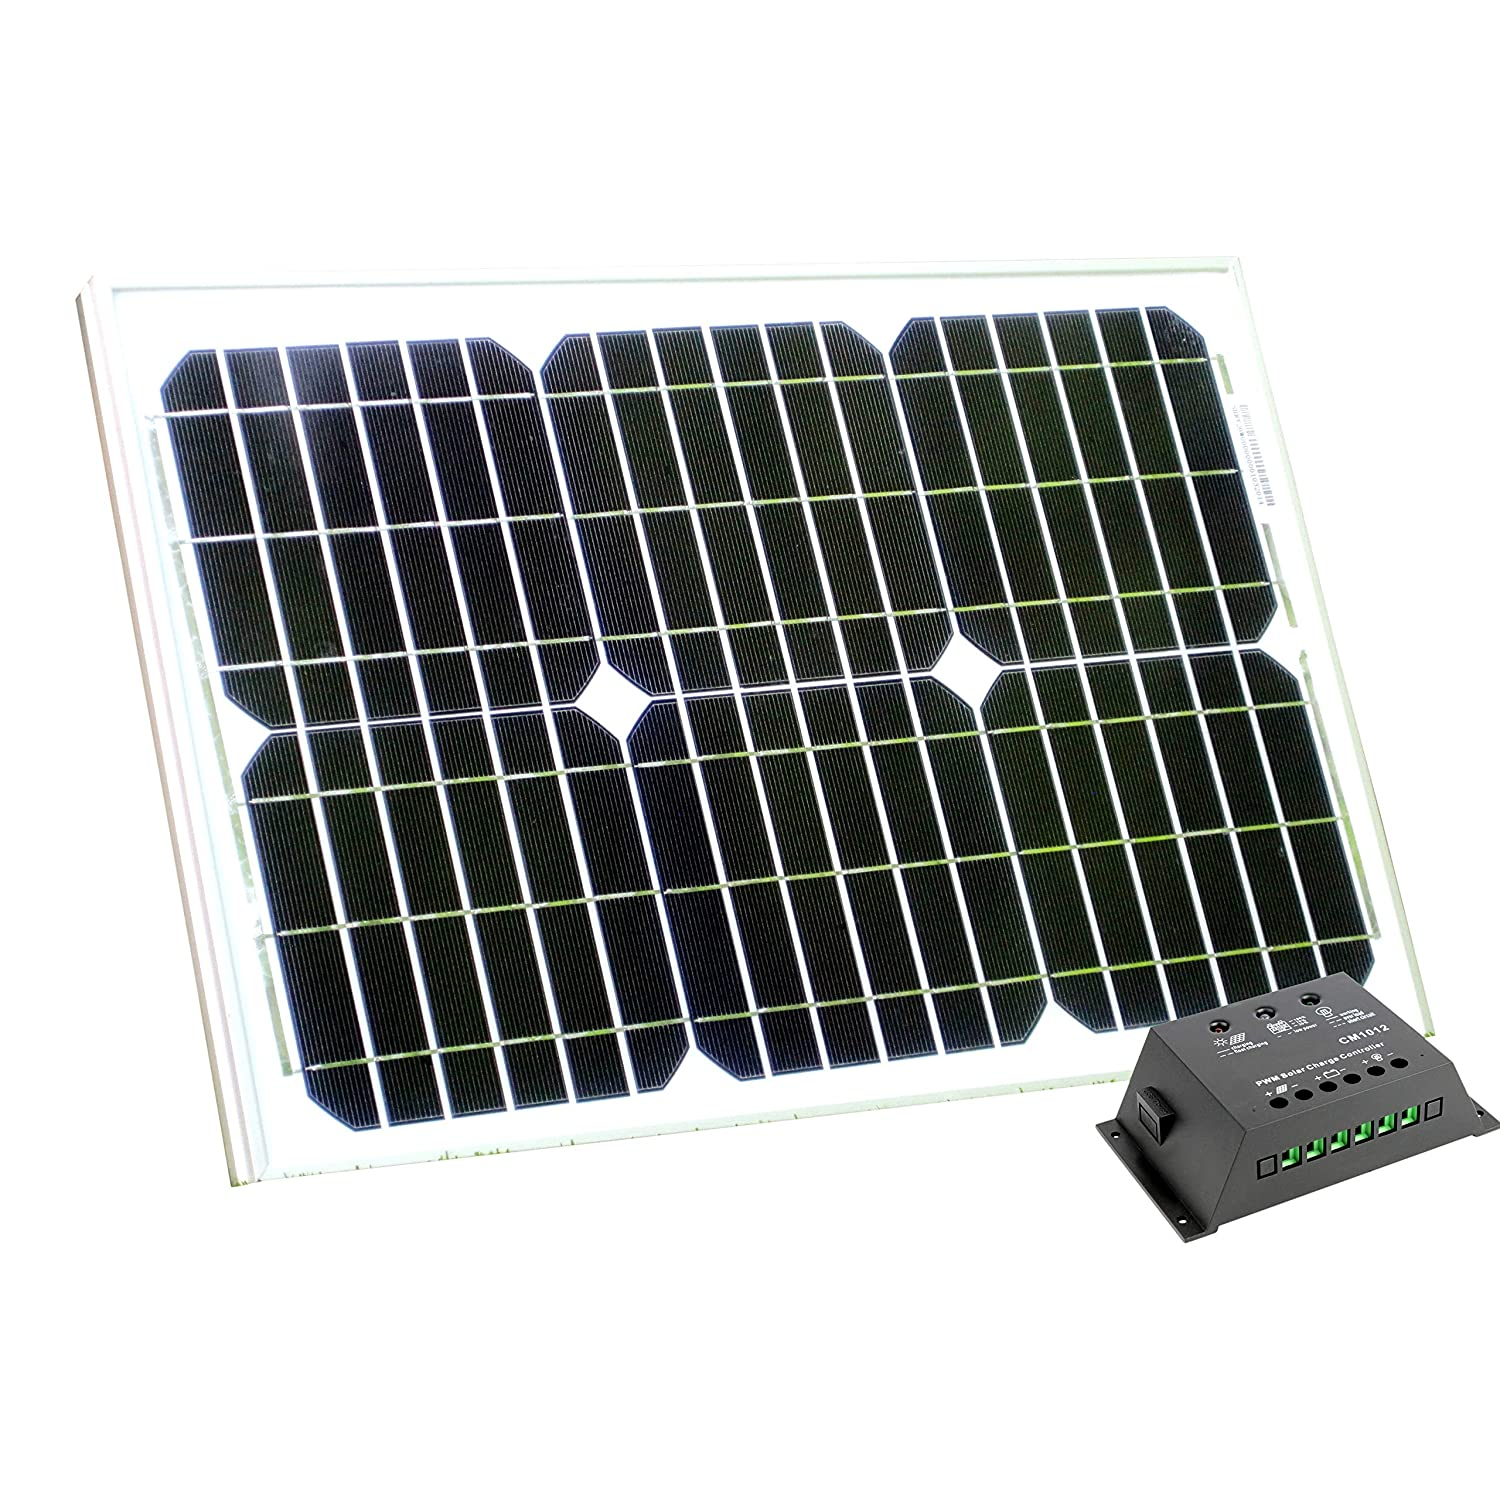 20W 12V Solar Panel with 10A Charge Controller for 12V Battery Solar Panel for Caravan Motorhome Camping Boat Shed Off-Grid System by PK Green